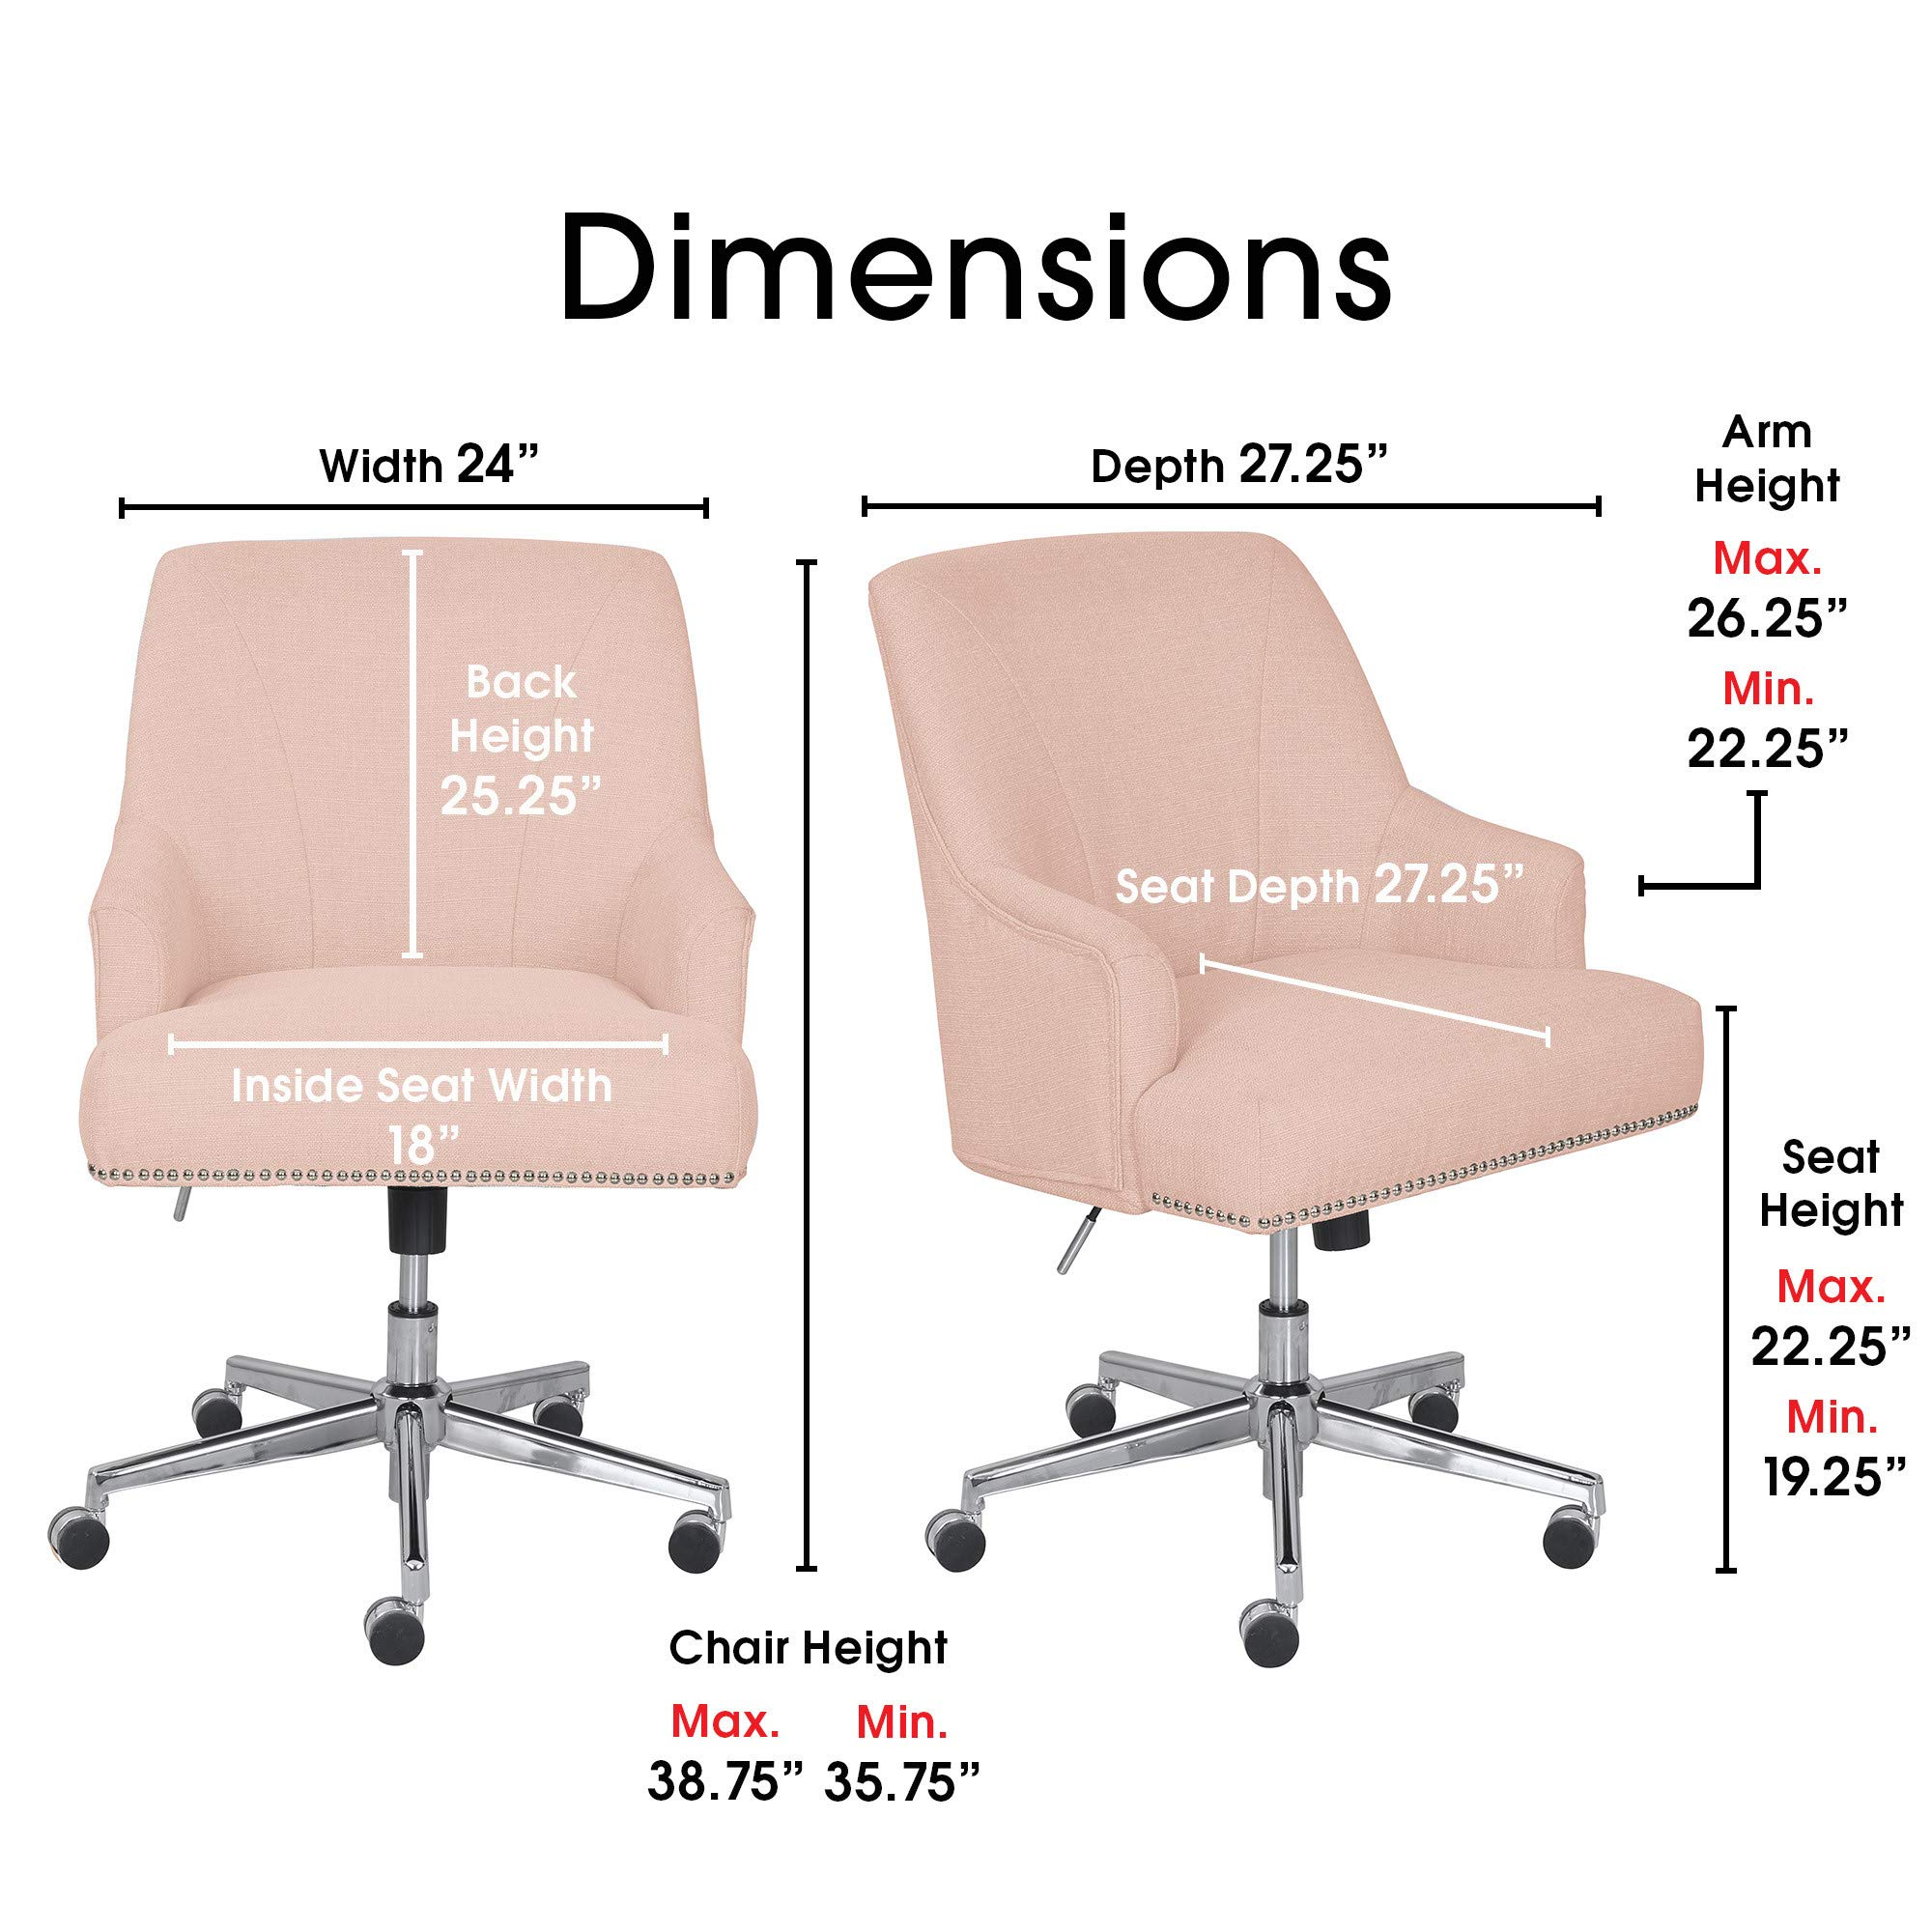 Serta Style Leighton Home Office Chair Inviting Graphite Twill Fabric Buy Online In South Africa Serta Products In South Africa See Prices Reviews And Free Delivery Over R1 000 Desertcart